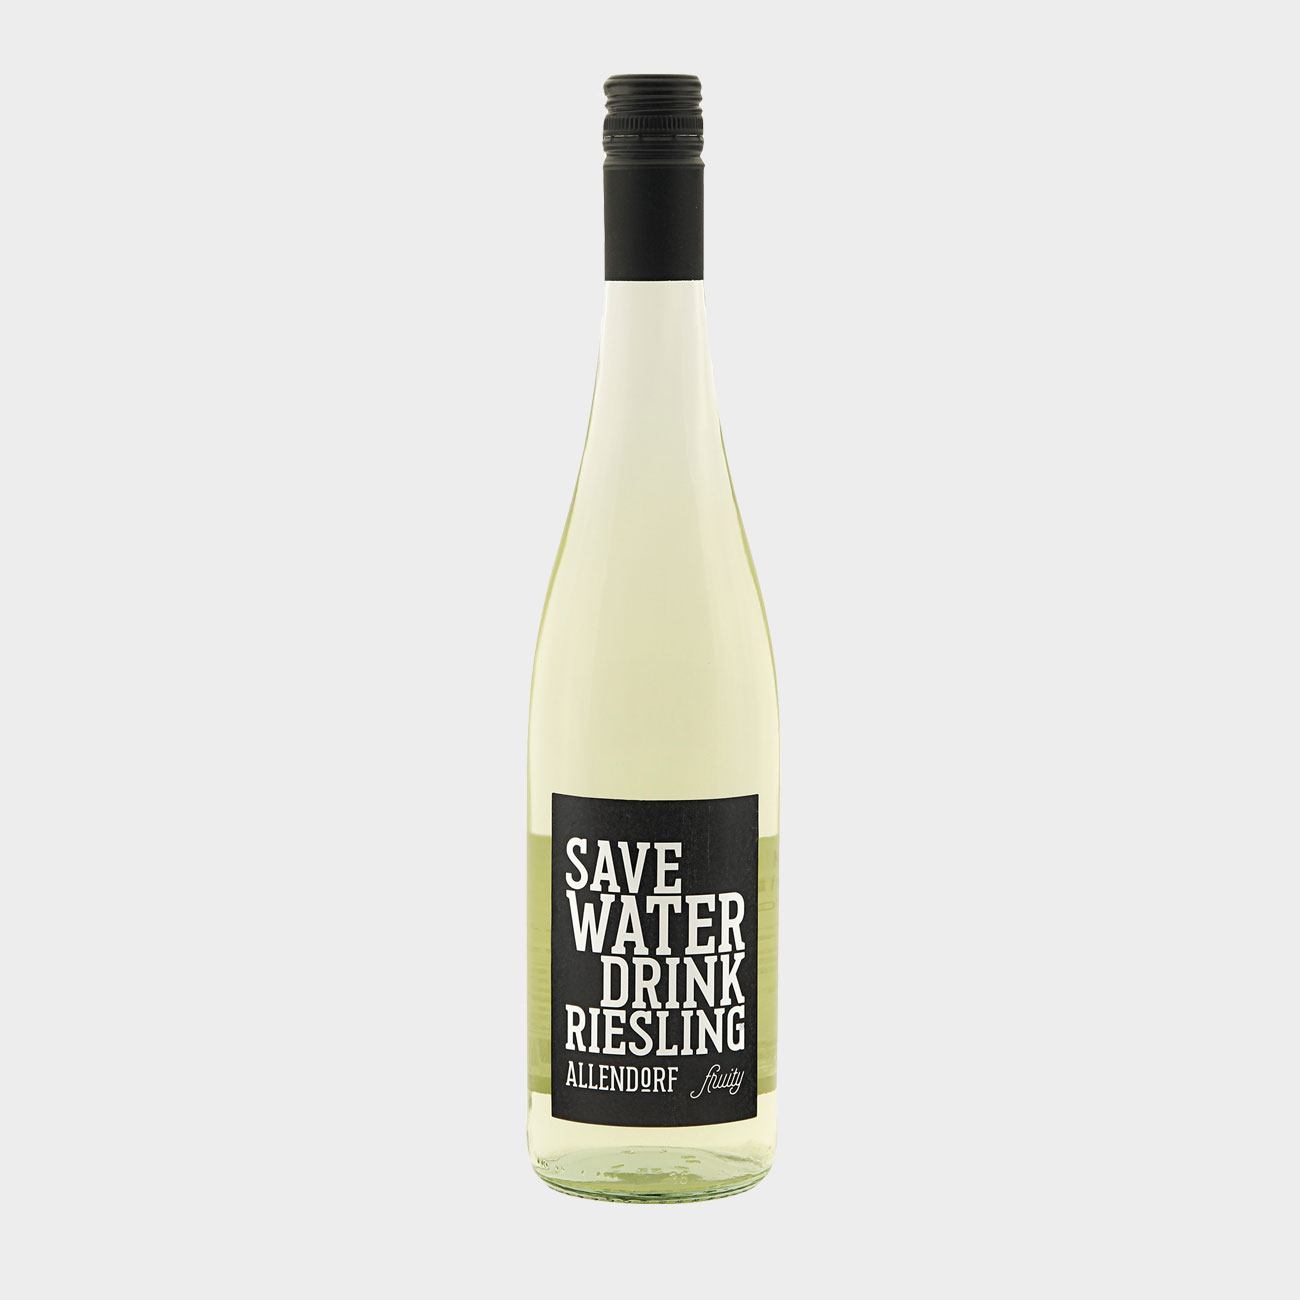 """Allendorf 2018 """"Save Water Drink Riesling fruity"""" QbA"""